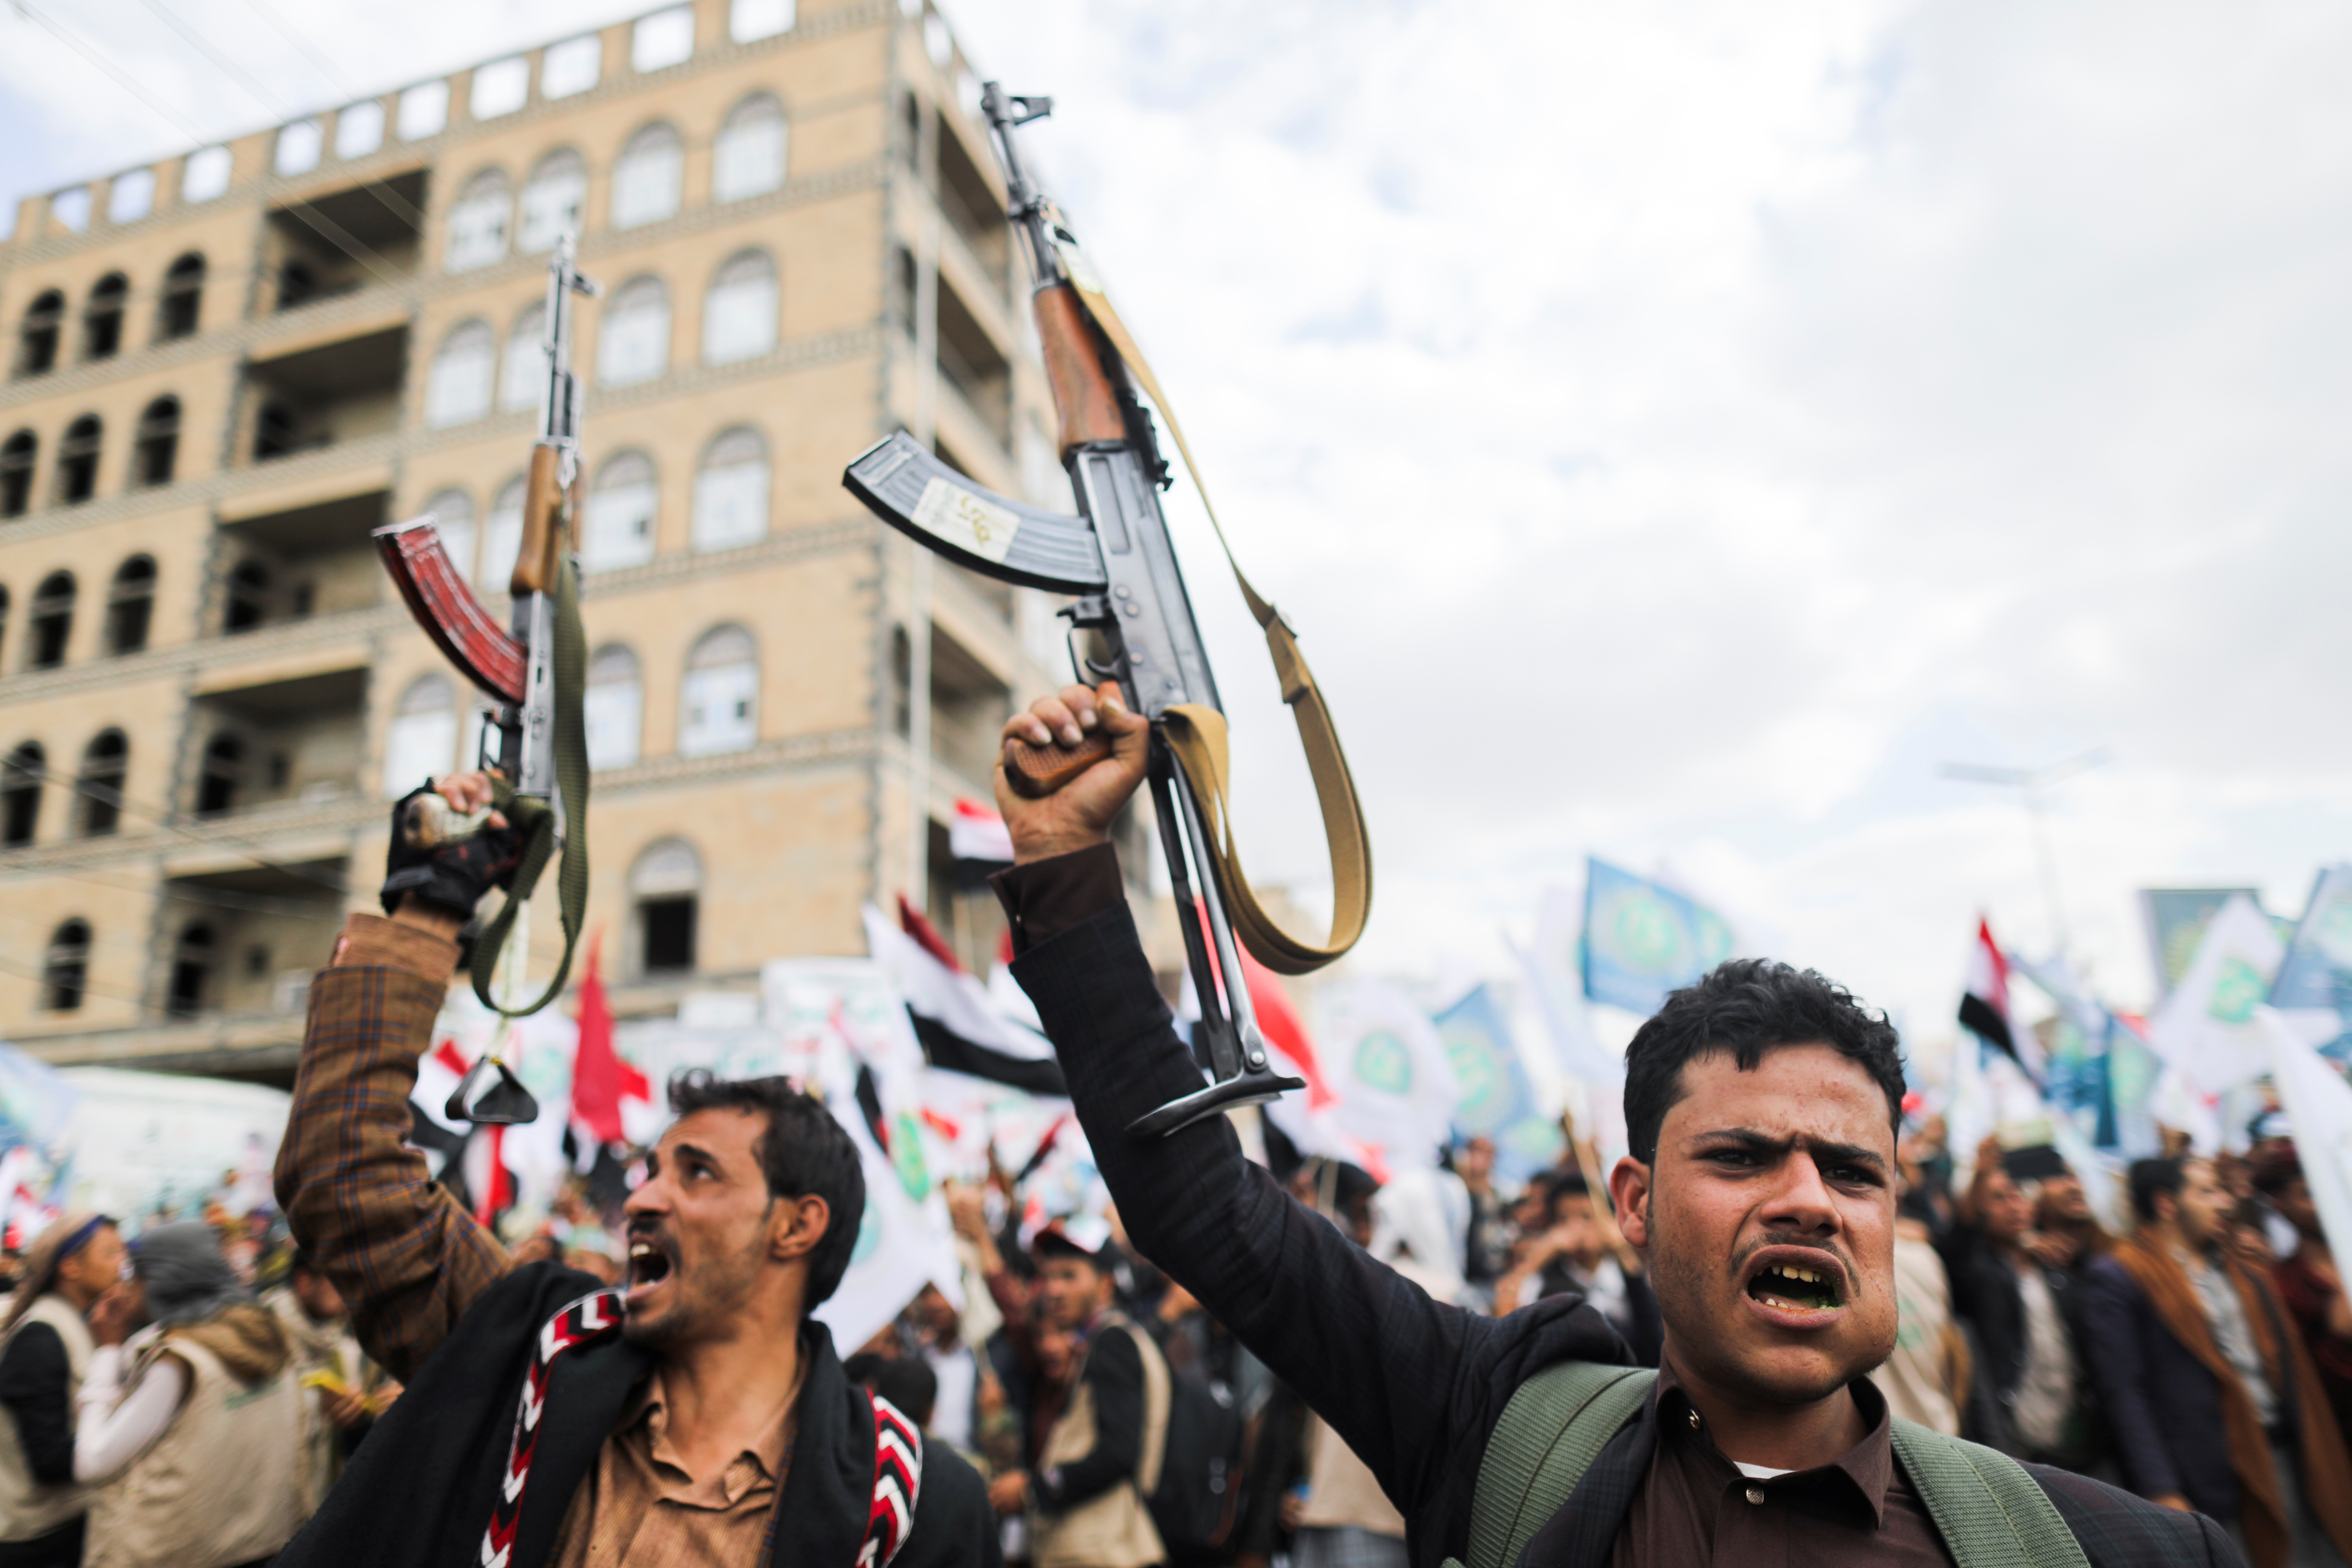 Supporters of Yemen's Houthis hold up their rifles as they rally to celebrate the seventh anniversary of the ousting of the government in Sanaa, Yemen September 21, 2021. REUTERS/Khaled Abdullah